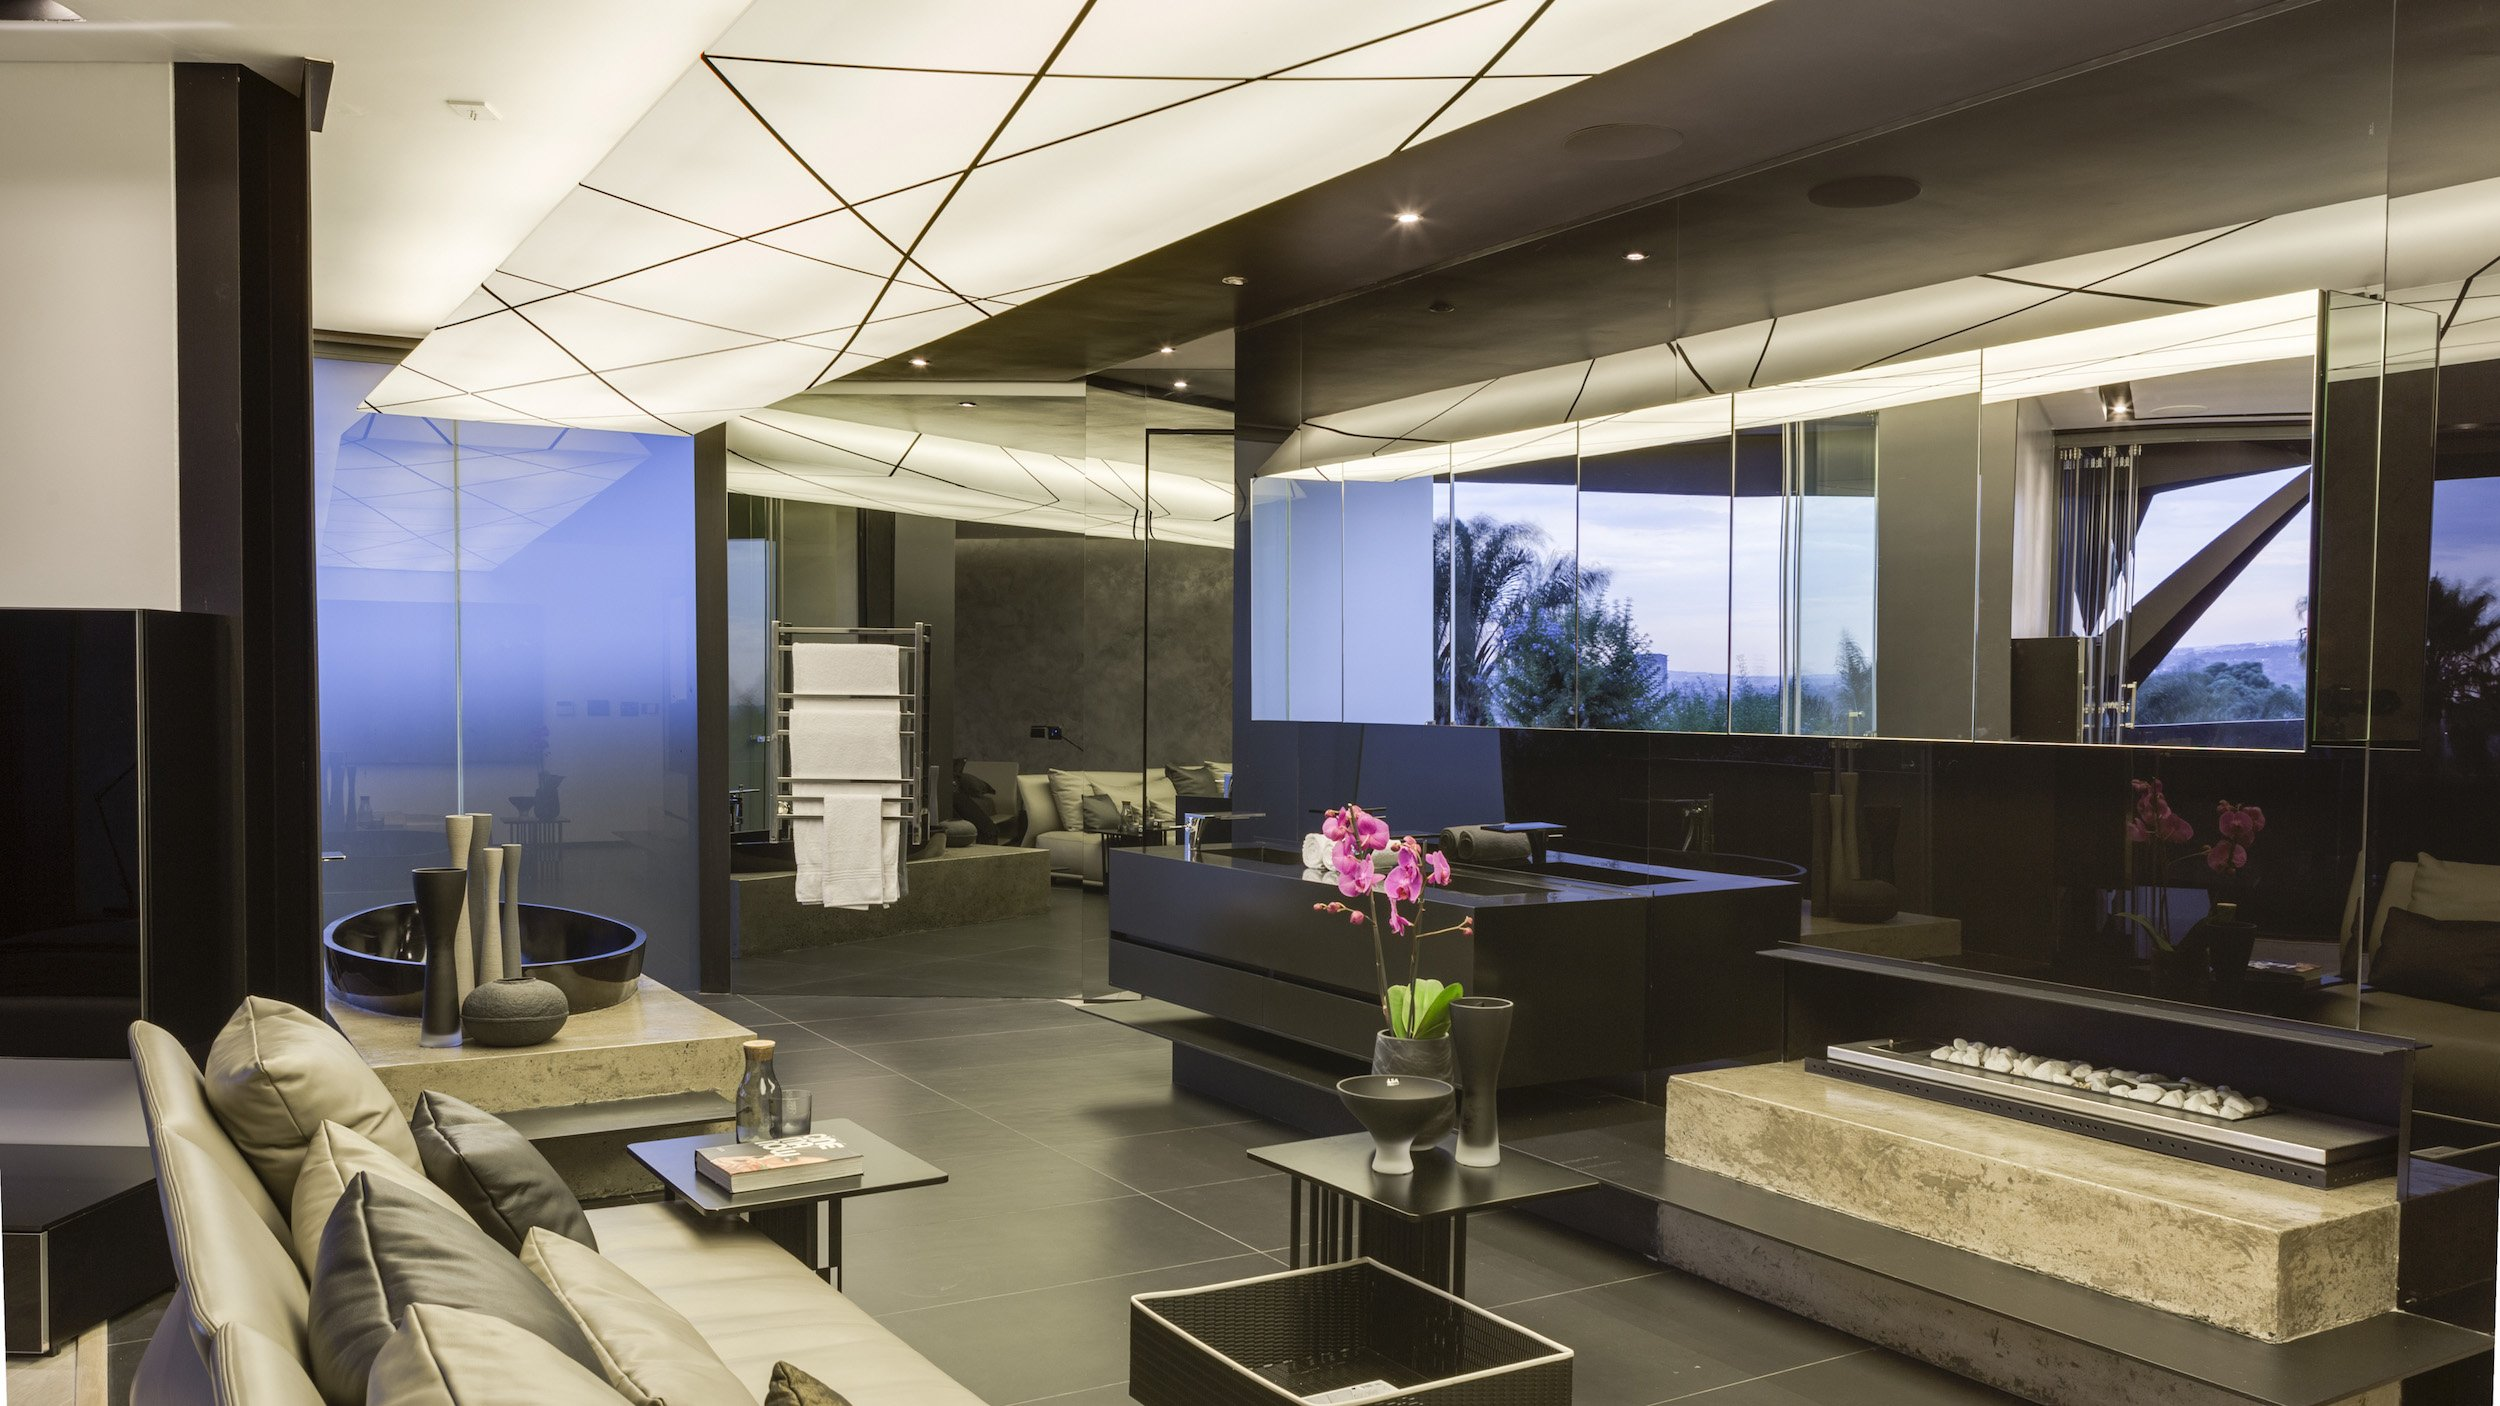 Kloof Road Masterpiece House in Johannesburg by Nico van der Meulen Architects-37